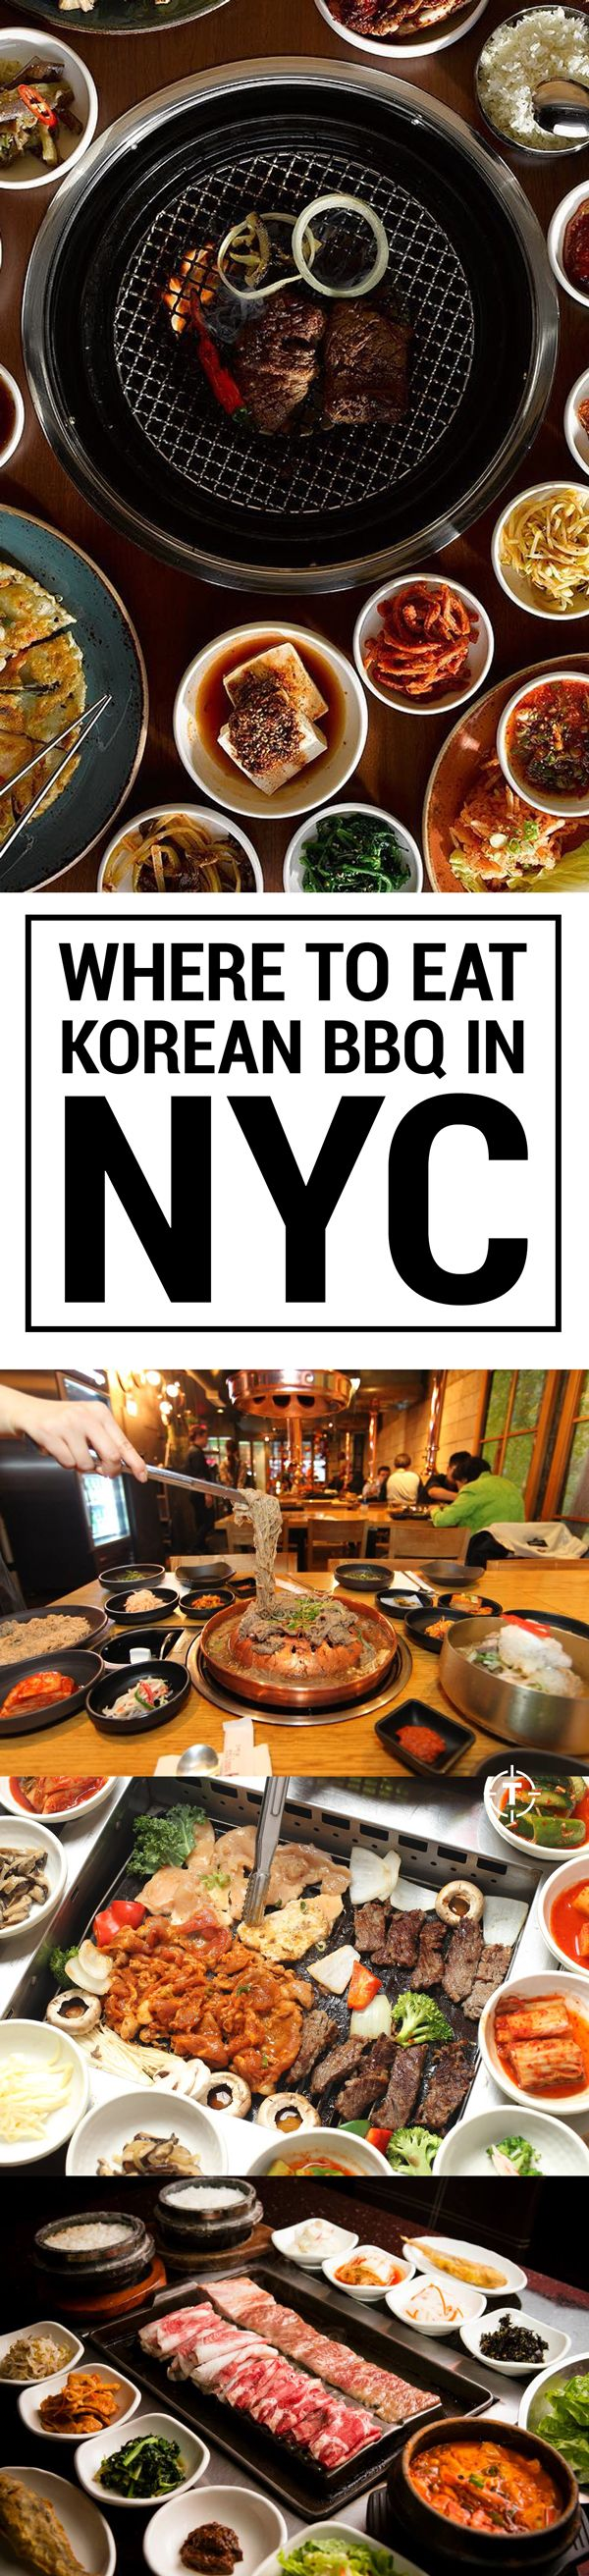 From a spot on the 39th floor of a K-town skyscraper, to several 24/7 joints, to a restaurant co-owned by Quentin Tarantino, it's a choose-your-own-adventure world in today's KBBQ. Get to exploring.